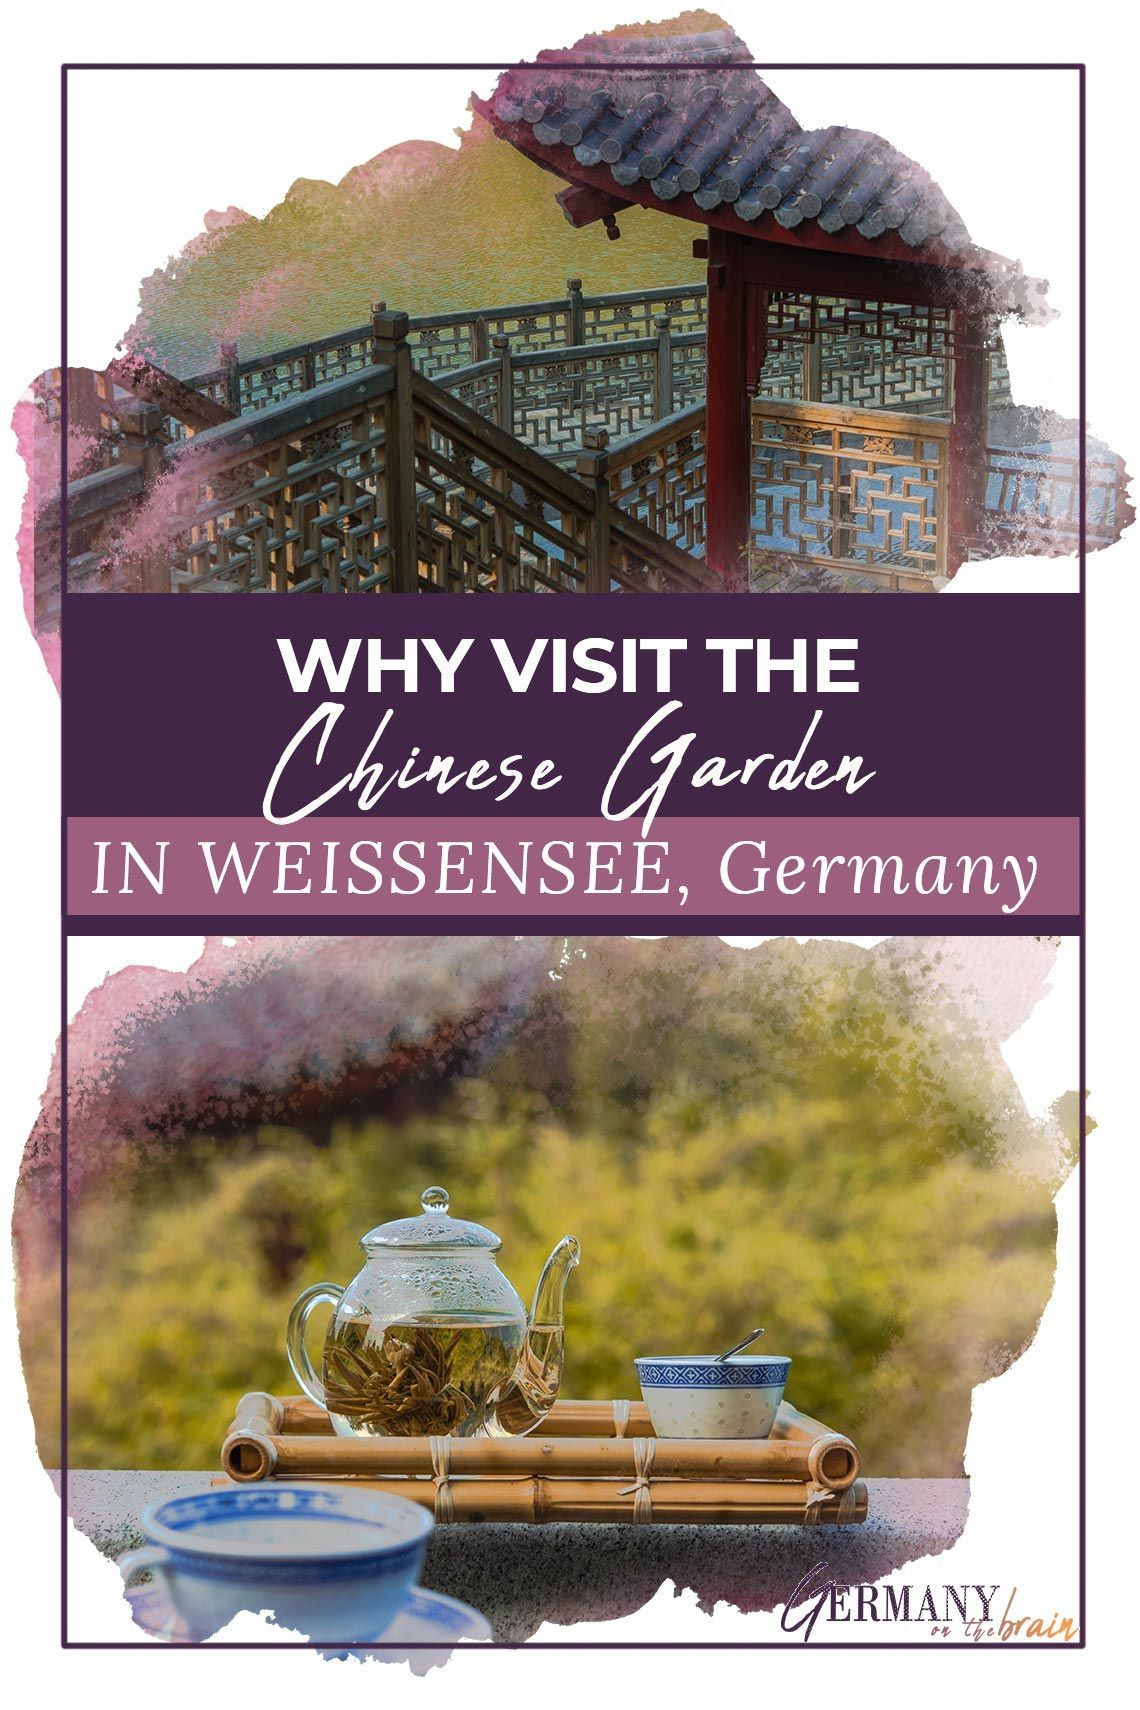 Why To Visit The Chinese Garten Weissensee Germany Germany Travel Guide Germany Europe Travel Guide